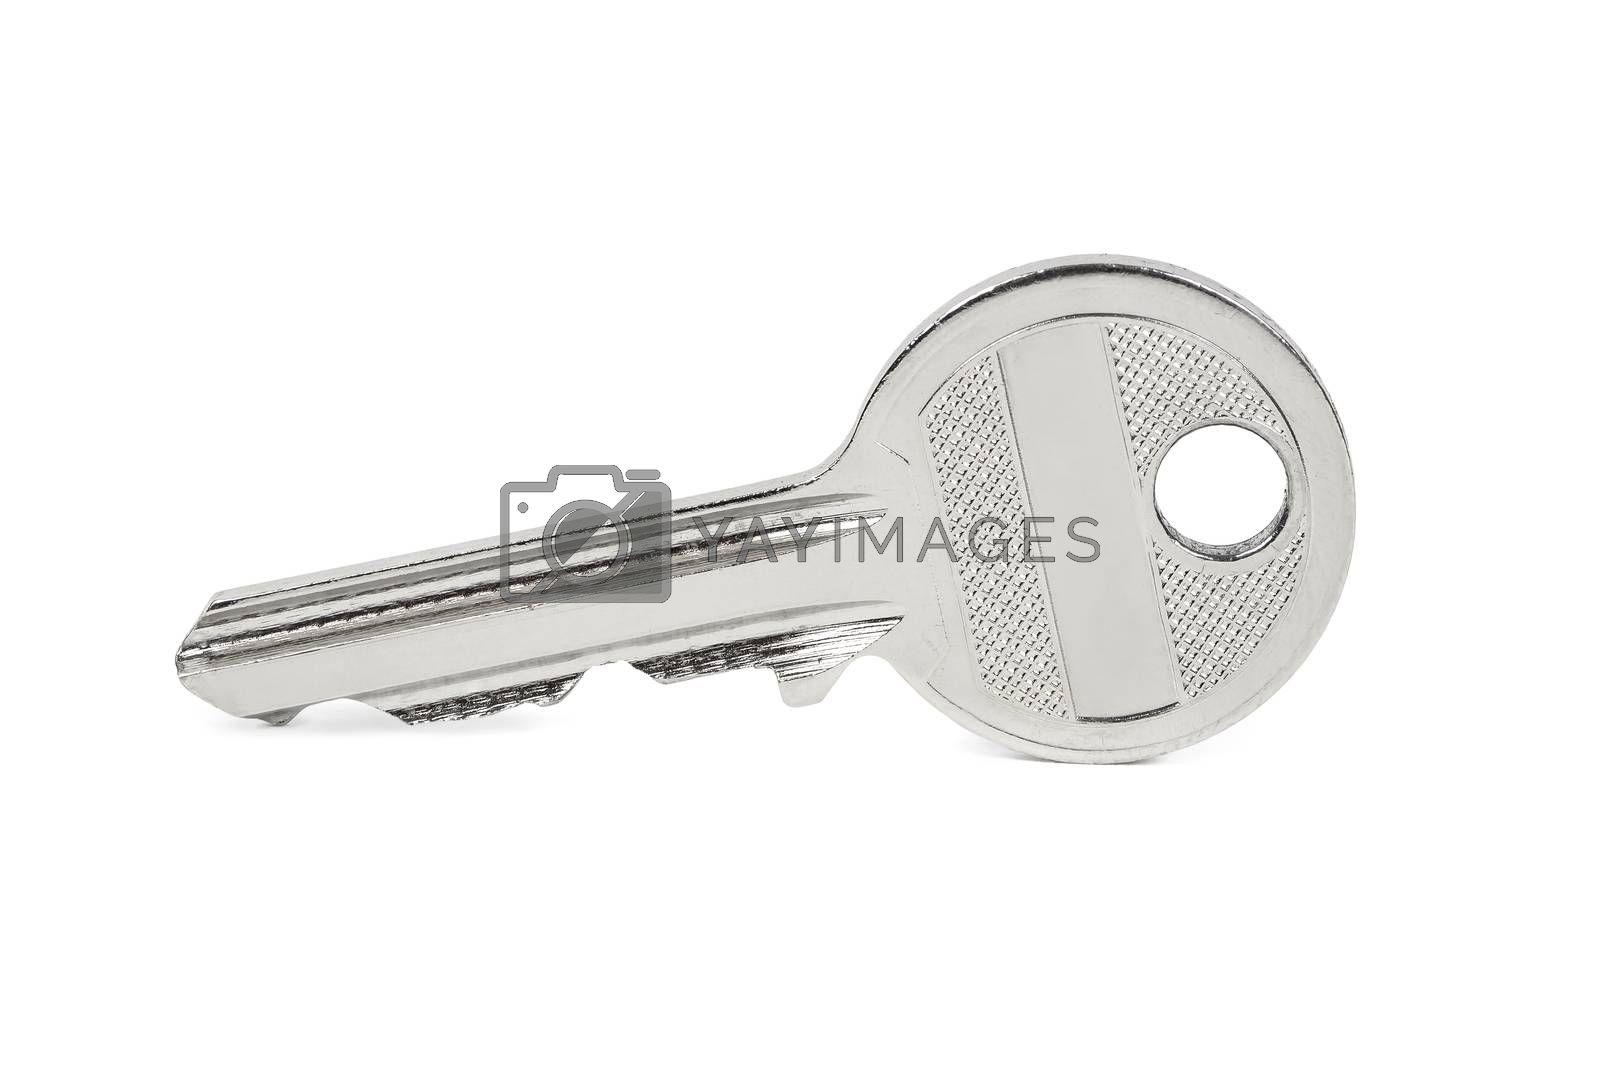 Key isolated on white background with clipping path